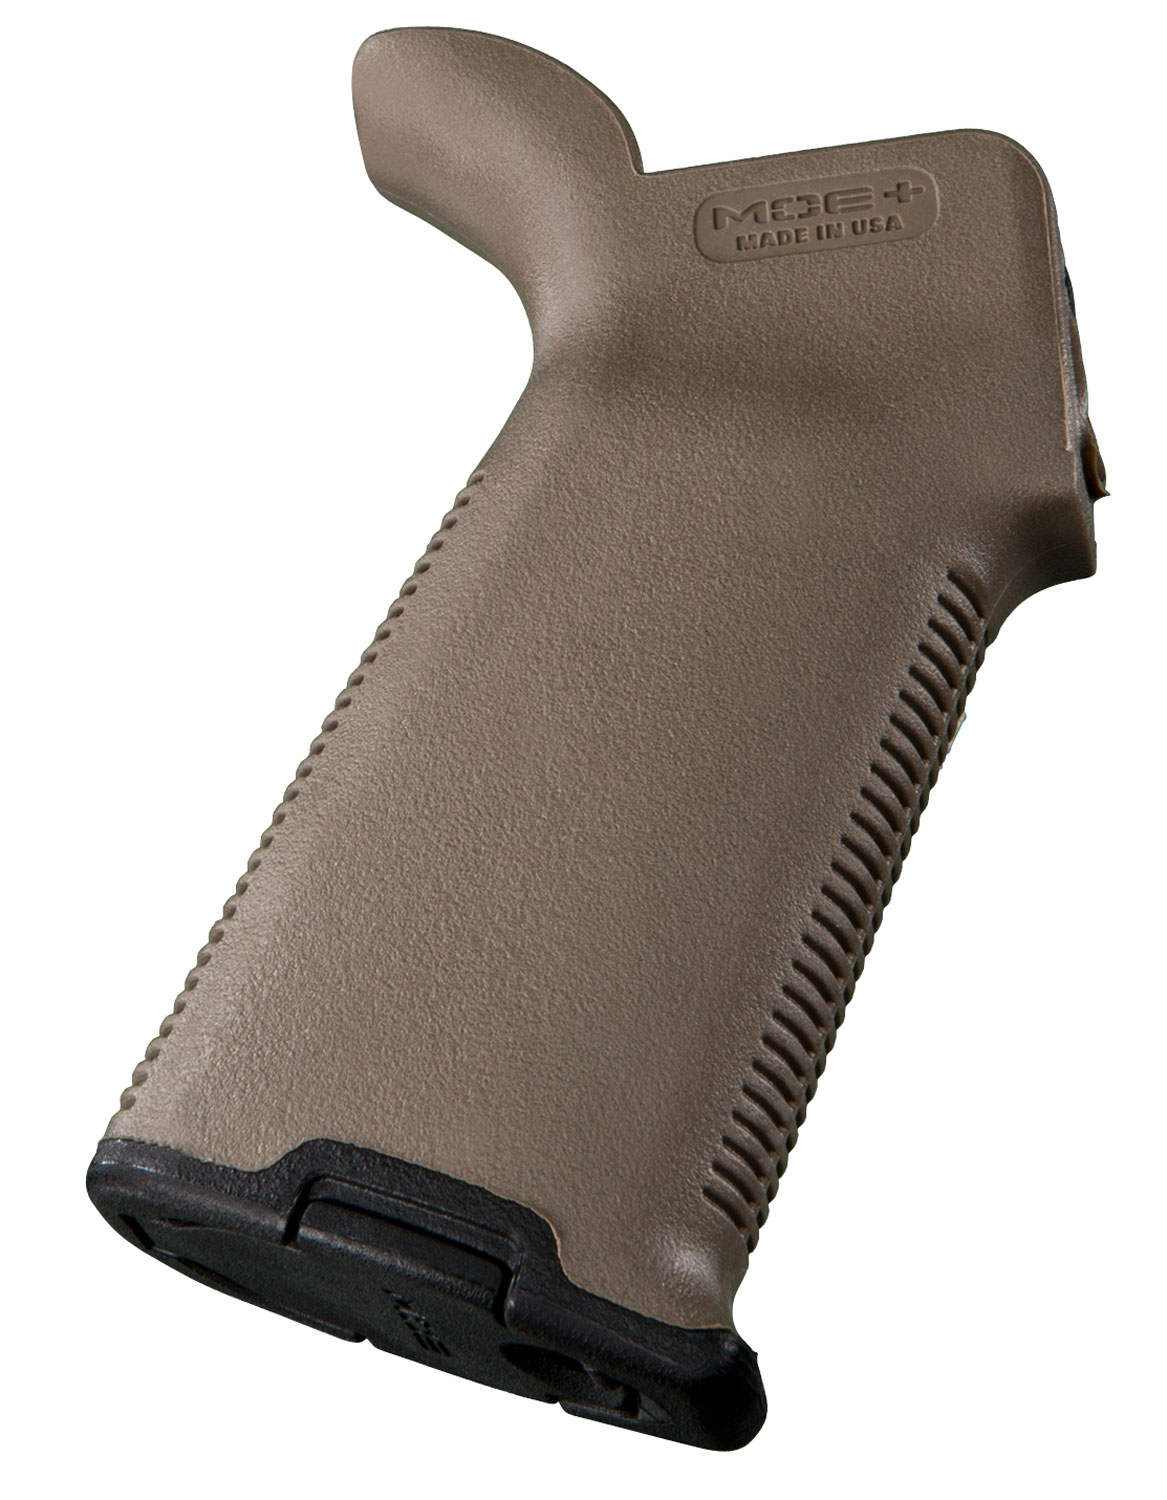 Magpul MAG416-FDE MOE+  Pistol Grip Textured Rubber Overmolded Polymer Flat Dark Earth